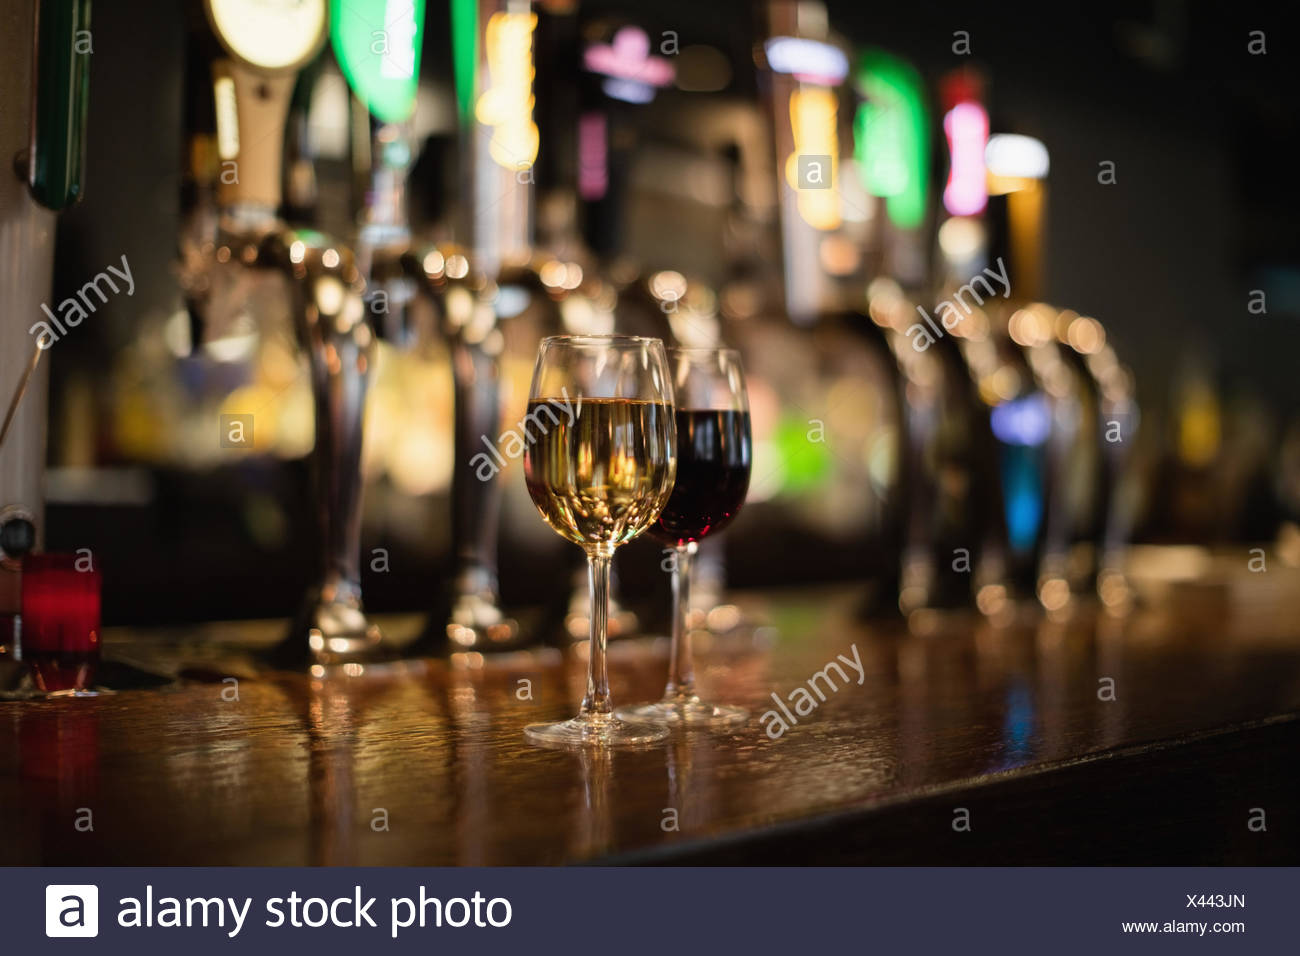 Two glass of red wine on bar counter - Stock Image